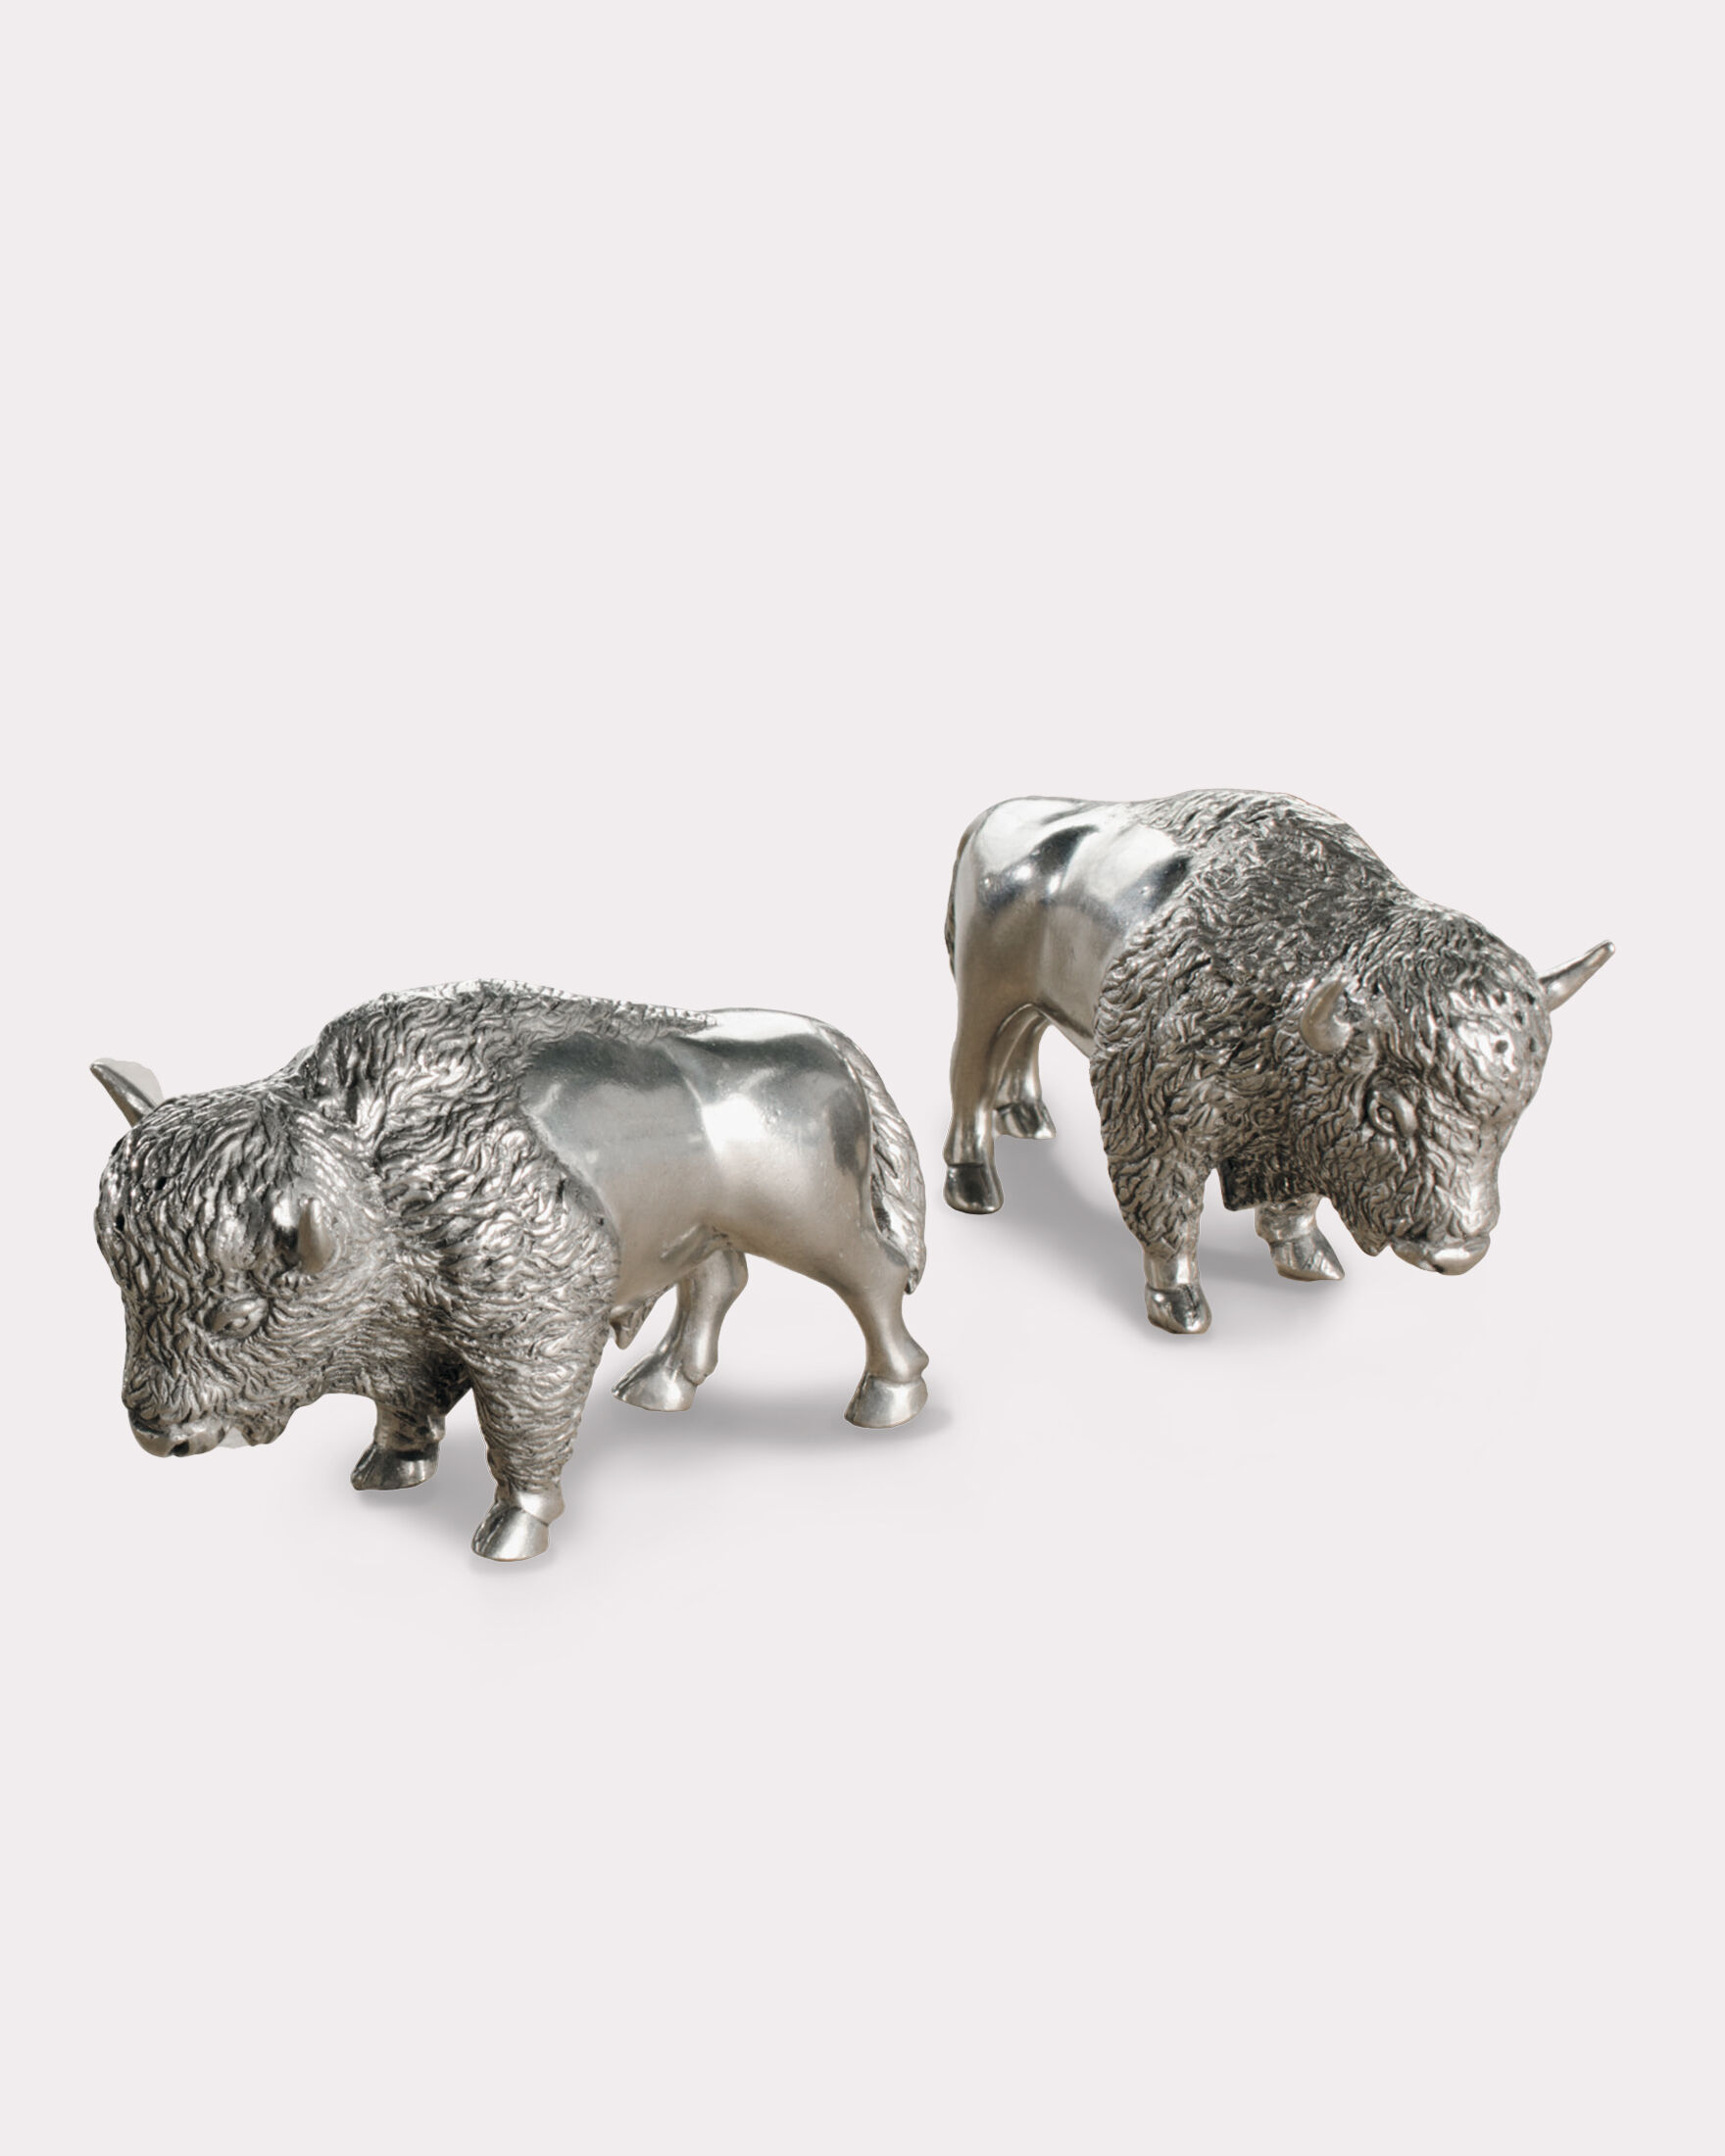 PEWTER BISON SALT AND PEPPER SHAKERS PEWTER BISON SALT AND PEPPER SHAKERS ... : pendleton dinnerware - pezcame.com